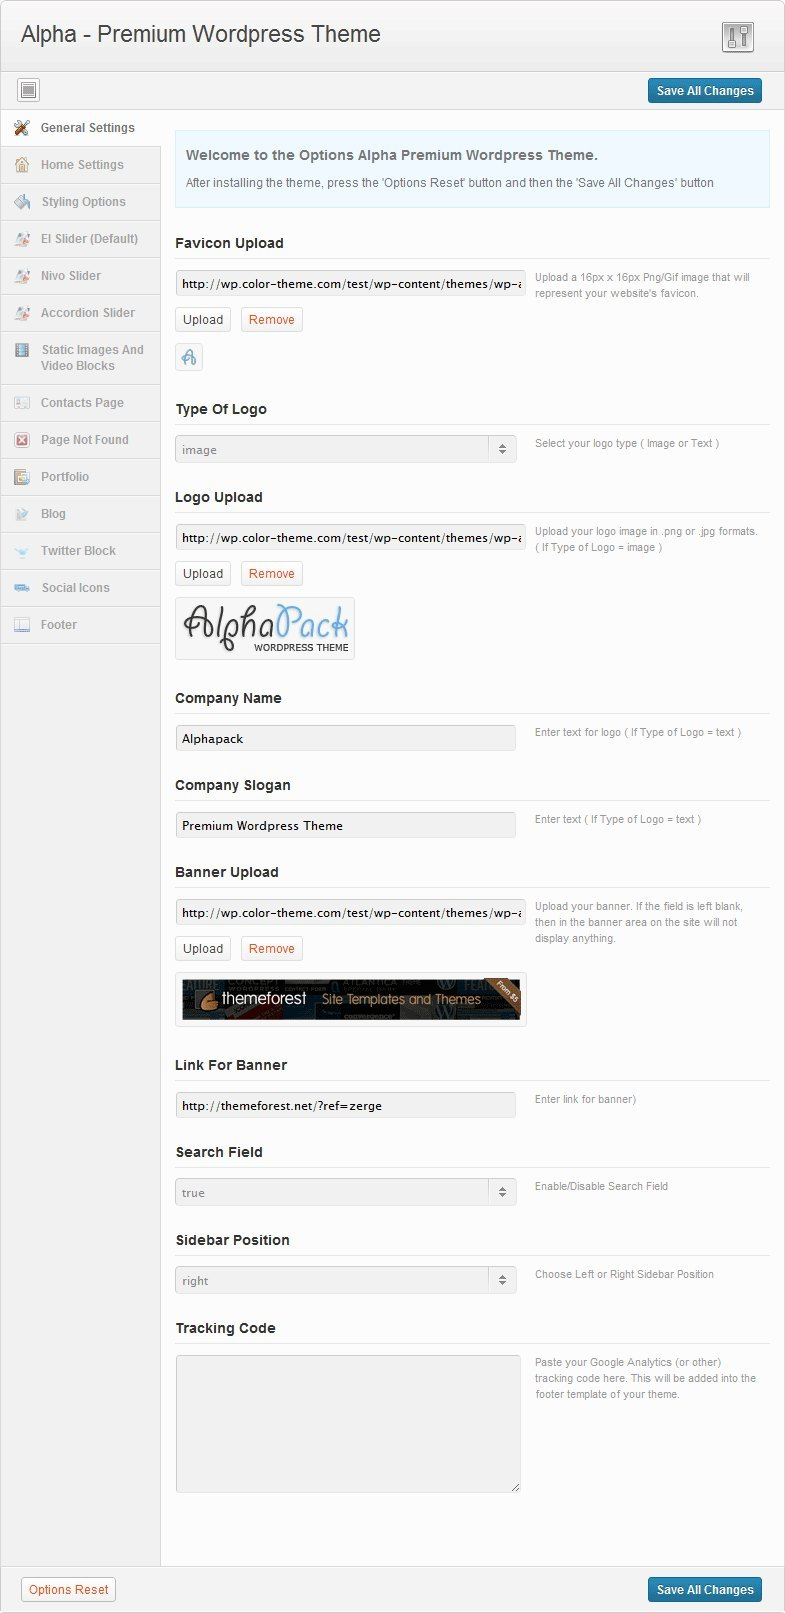 Alphapack - Premium WordPress Theme - Admin Panel - General Settings